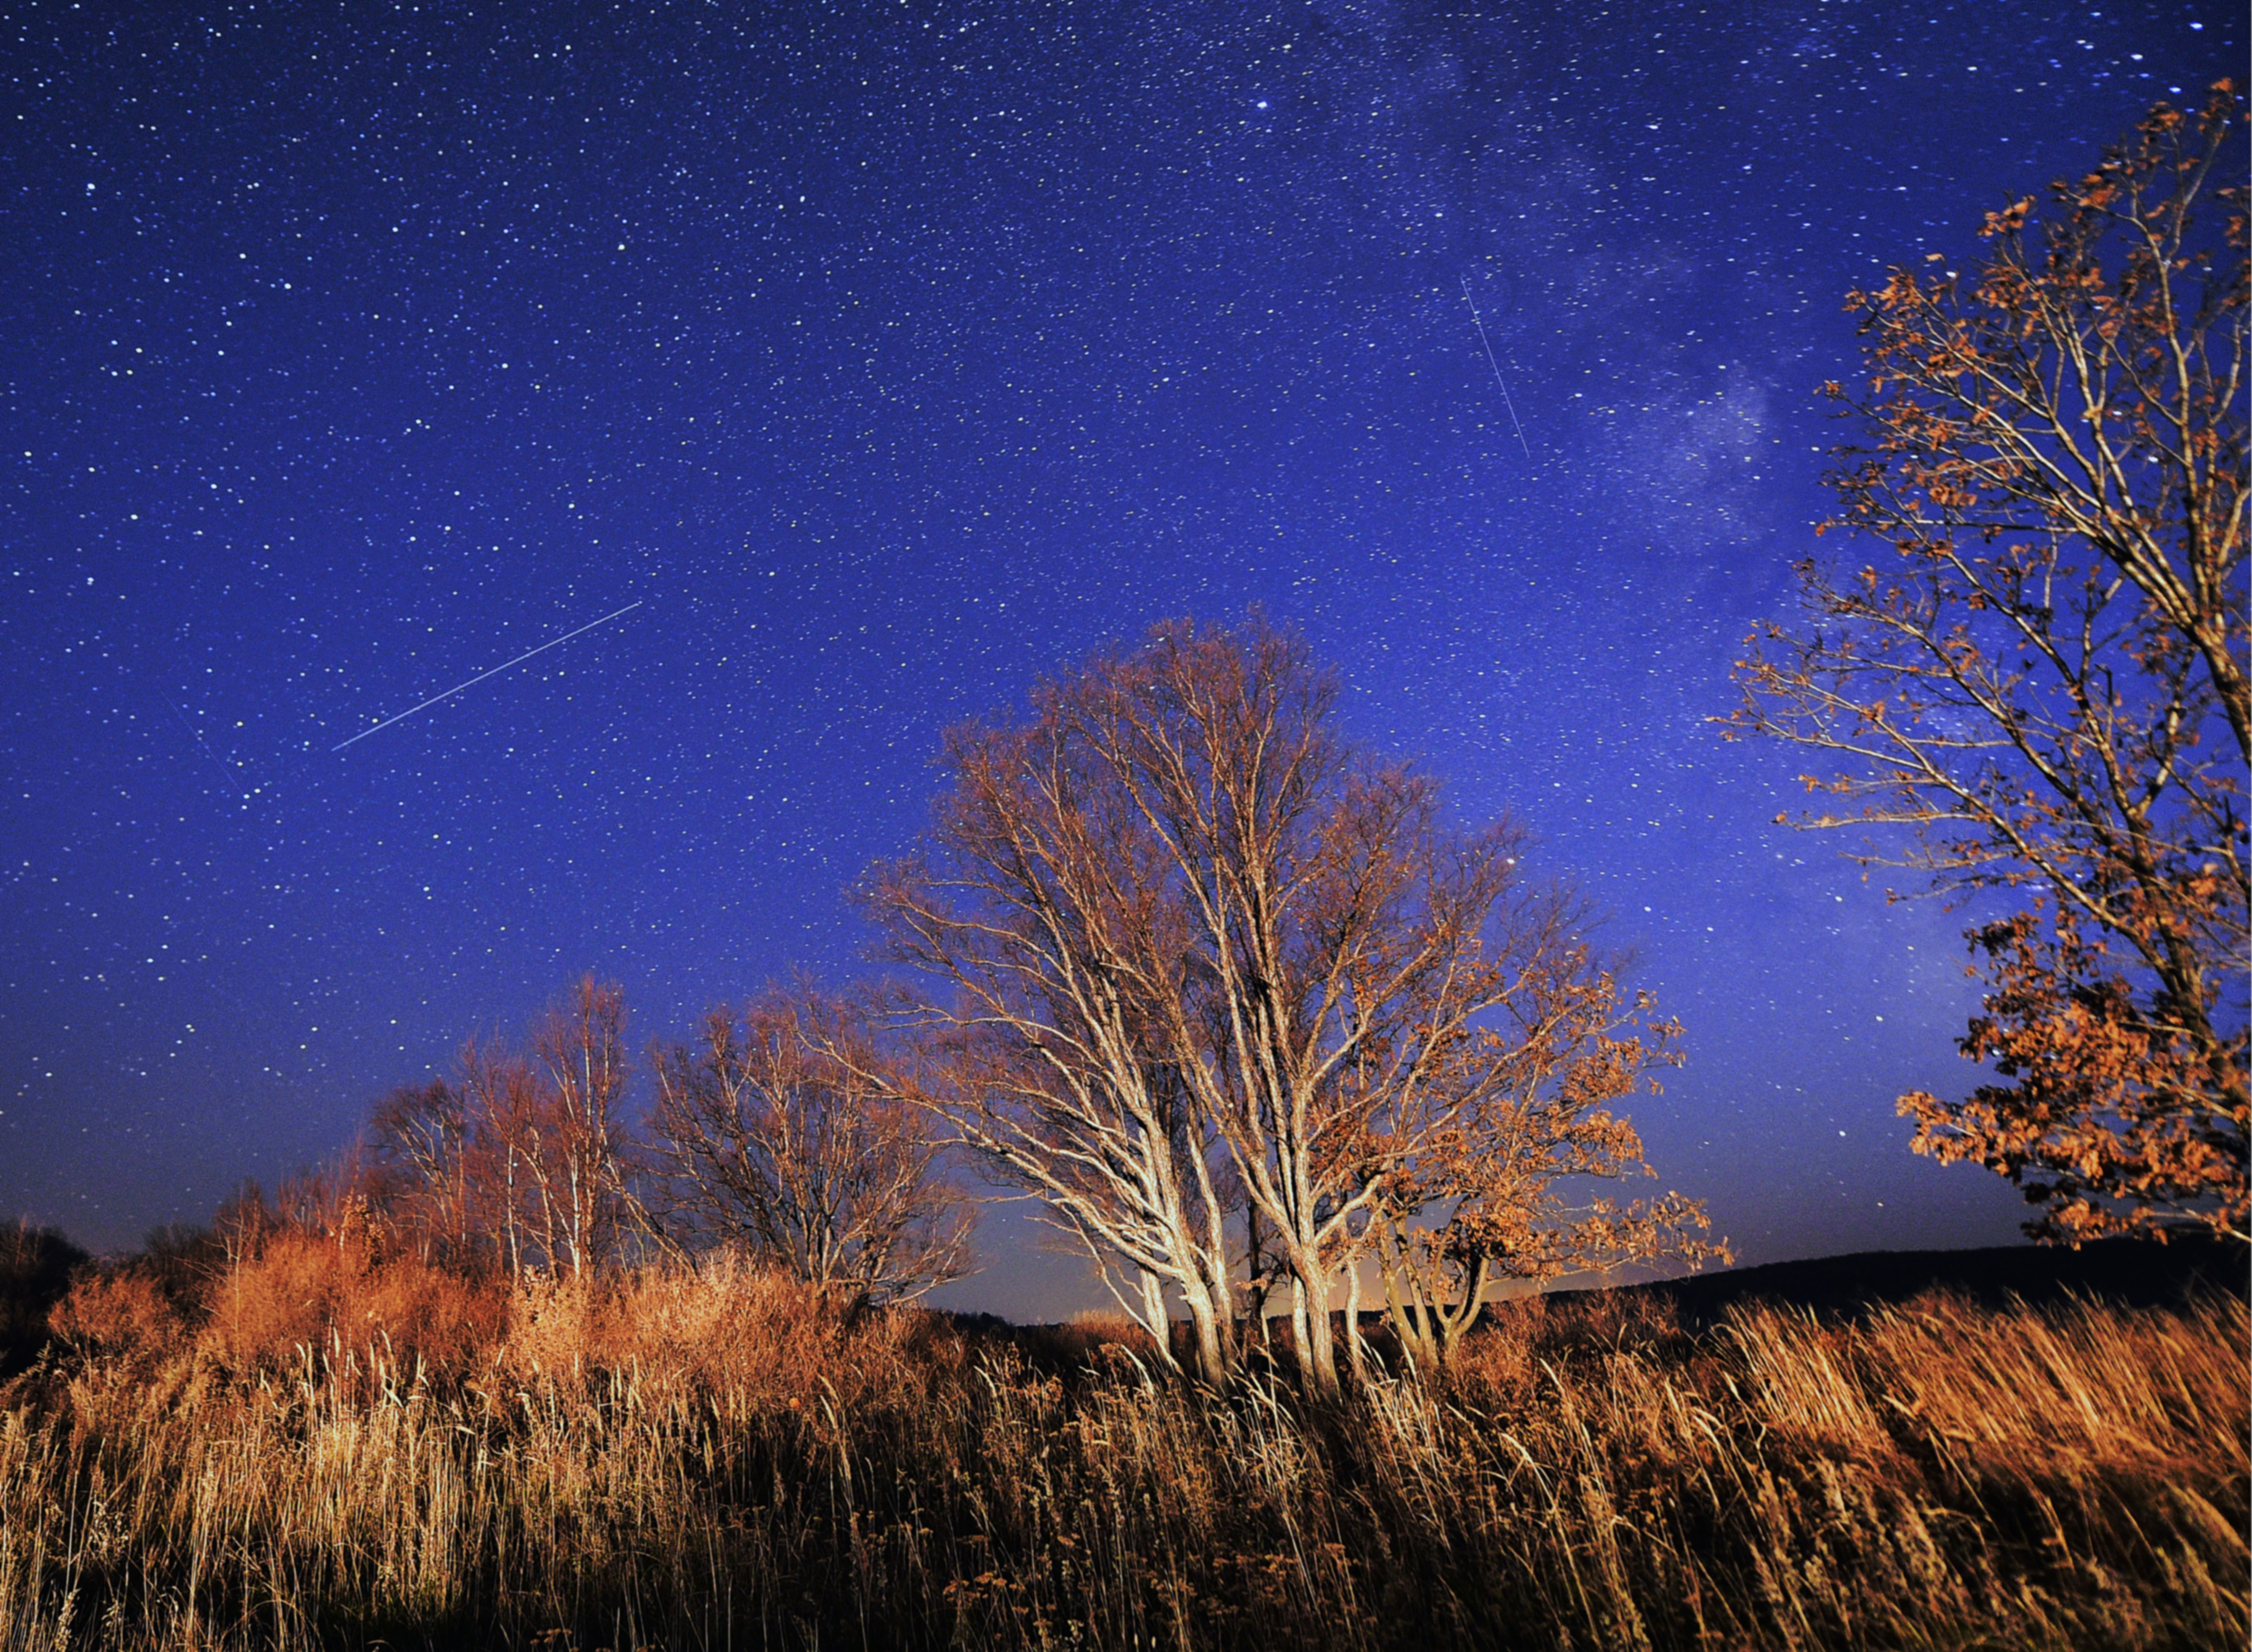 Our Sky Will Be Full of Shooting Stars This Week Thanks to Halley's Comet